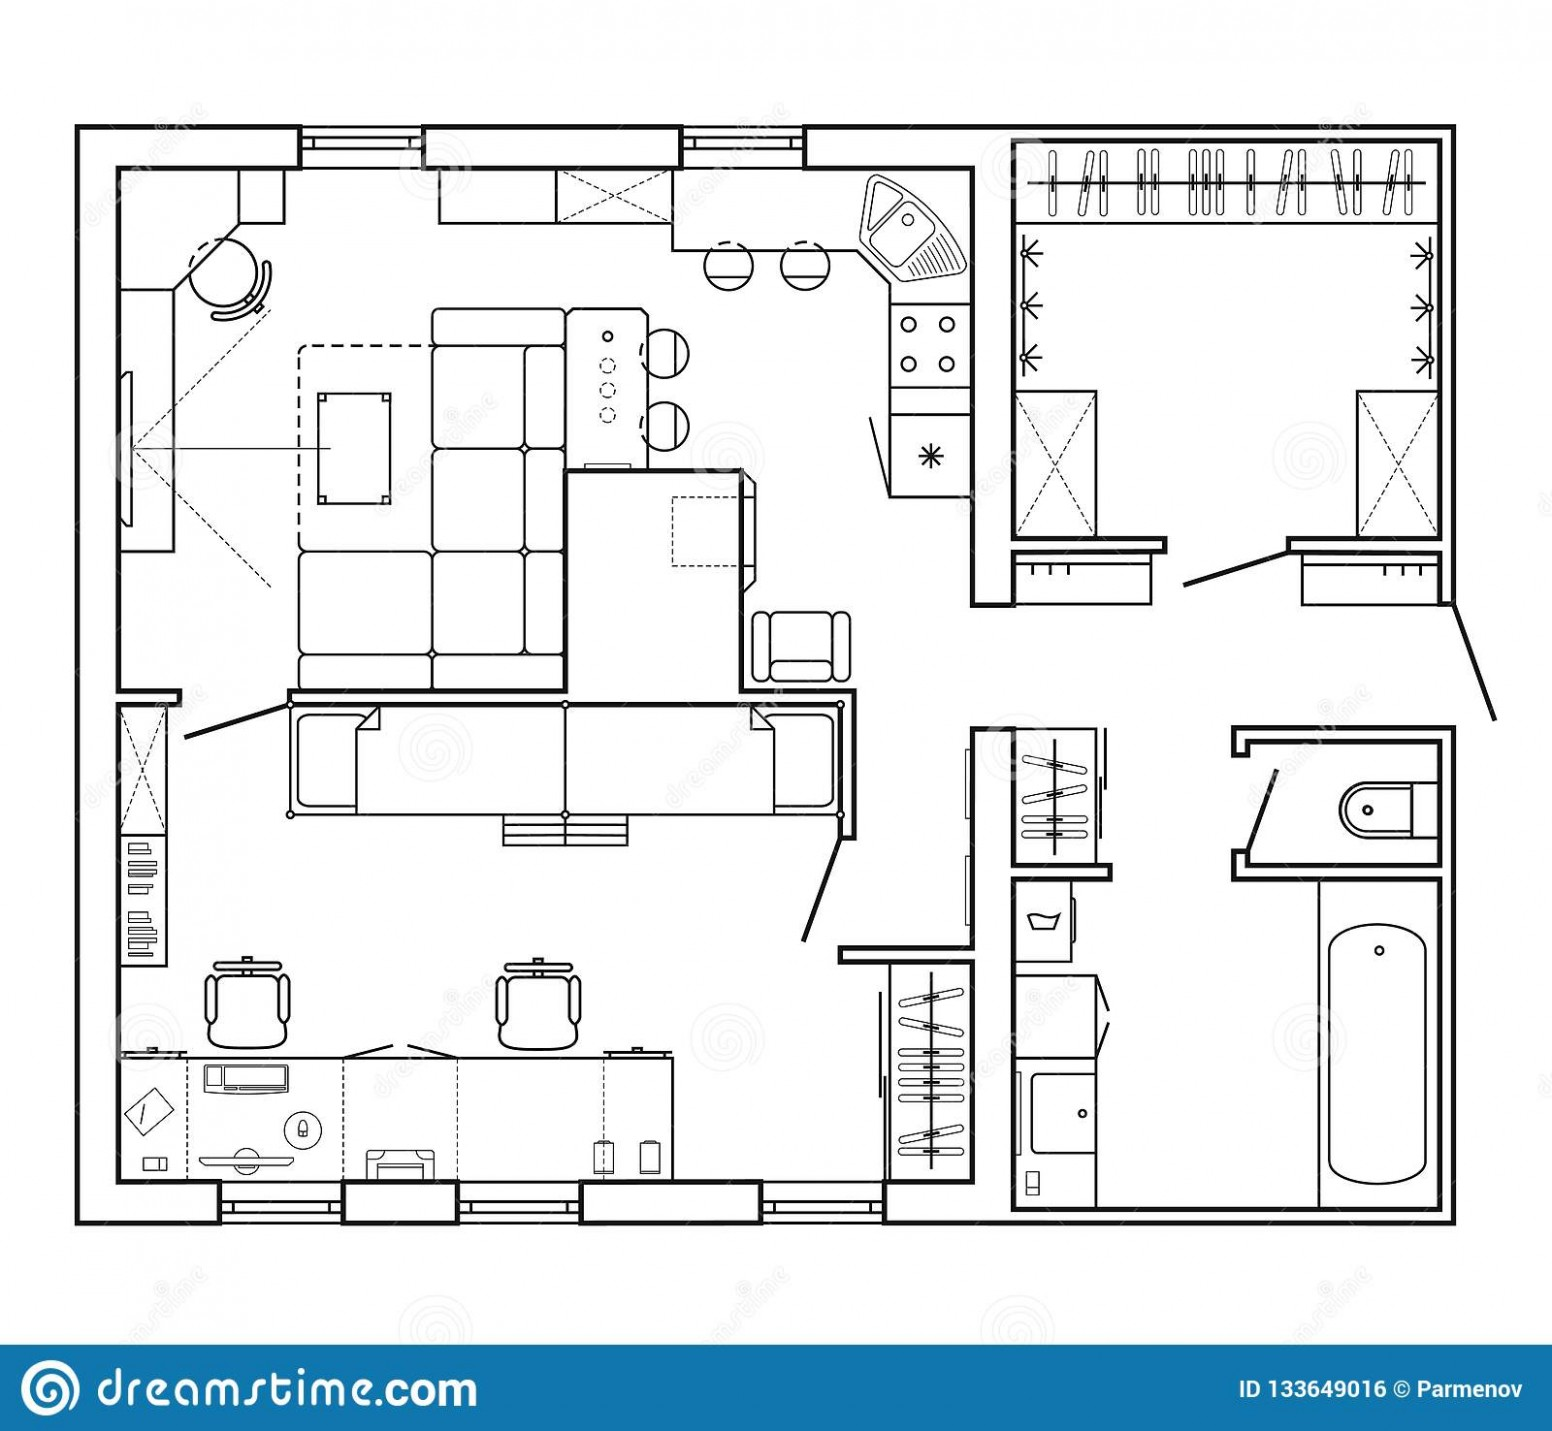 Layout Of The Apartment With The Furniture In The Drawing View  - Apartment Design Drawing